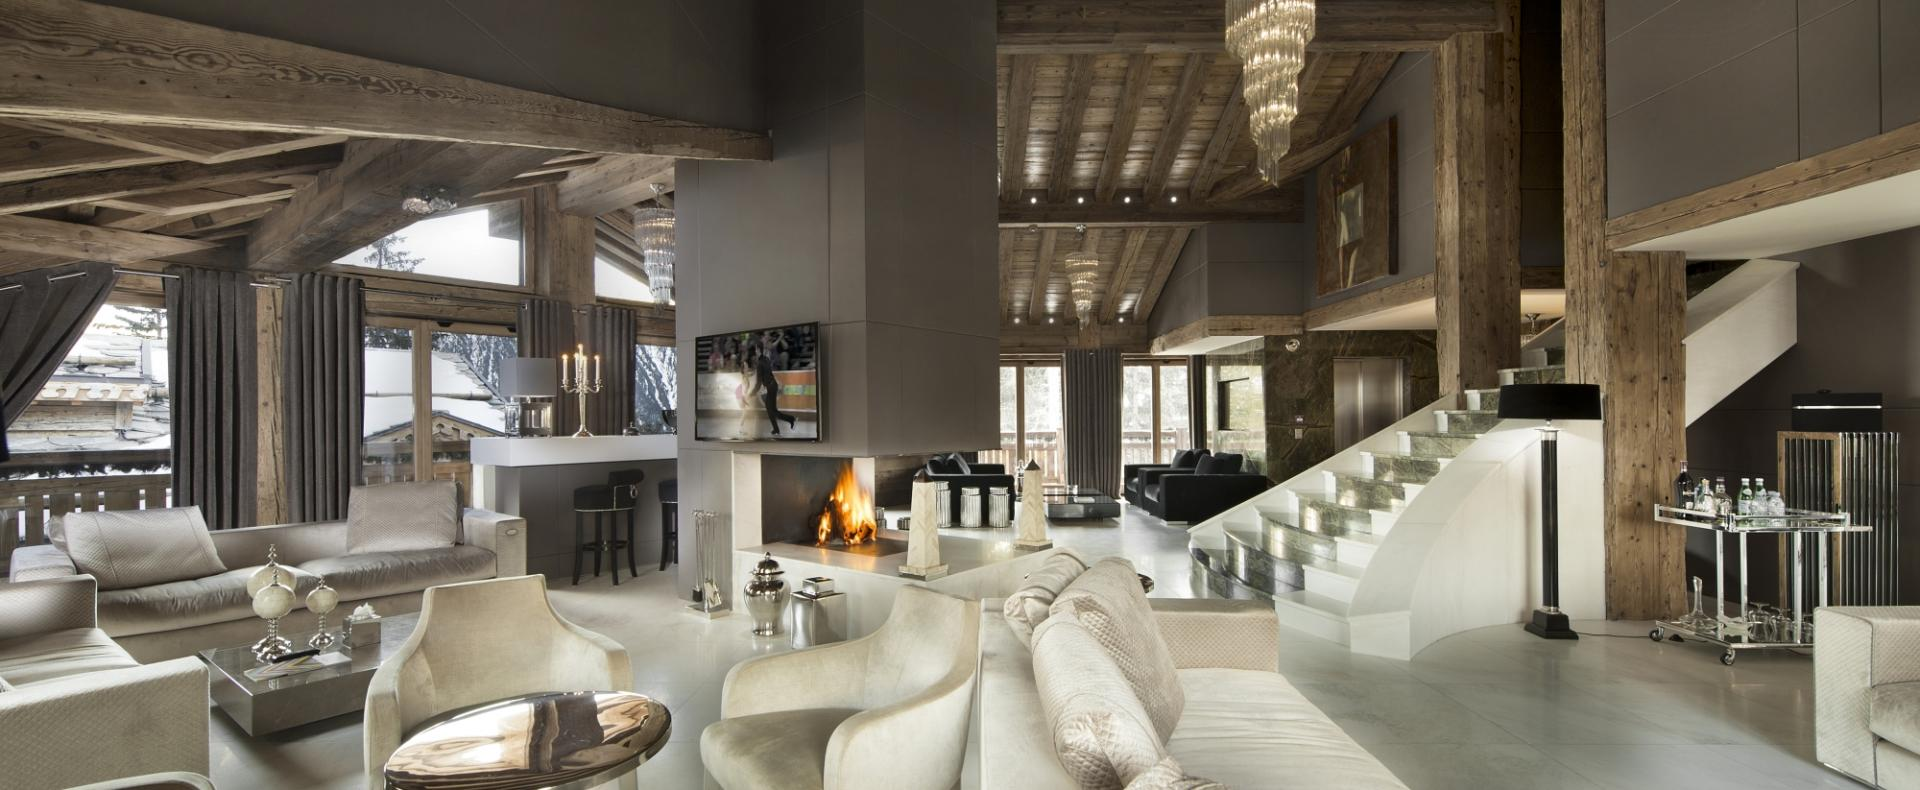 Chalet tahoe ski courchevel 1850 france ultimate luxury for Decoration interieur france